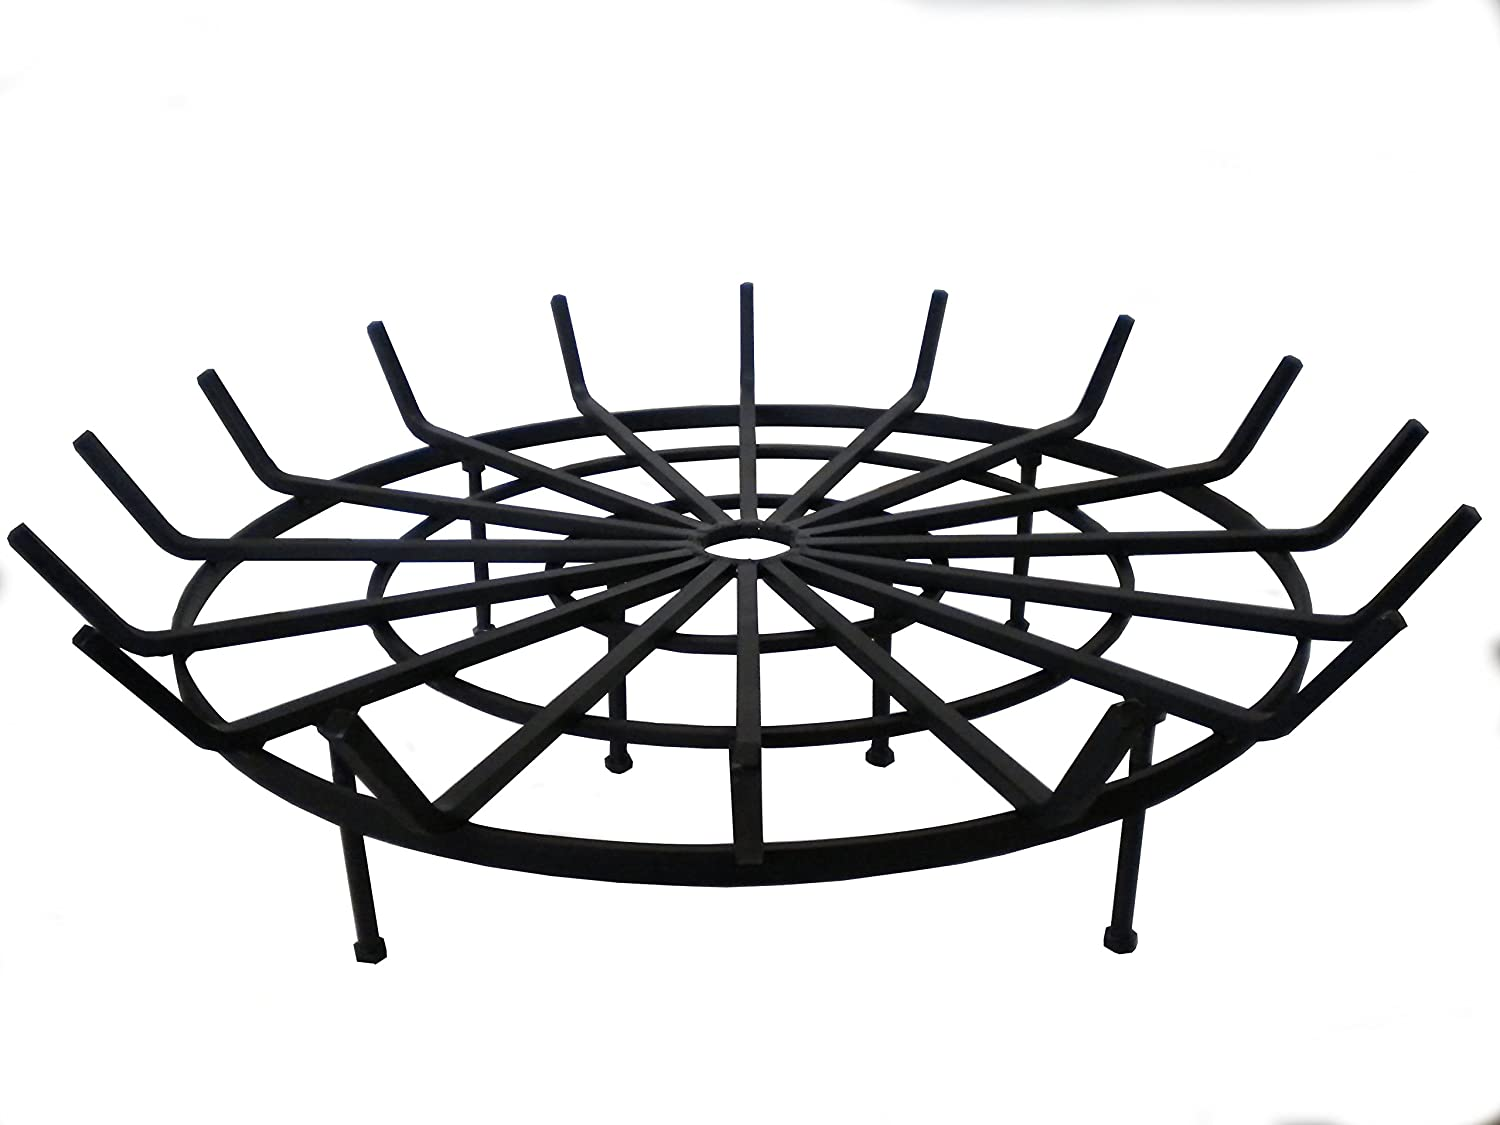 B M SALES Round Spider Grate for Outdoor Fire Pit 34 Diameter 6 Legs